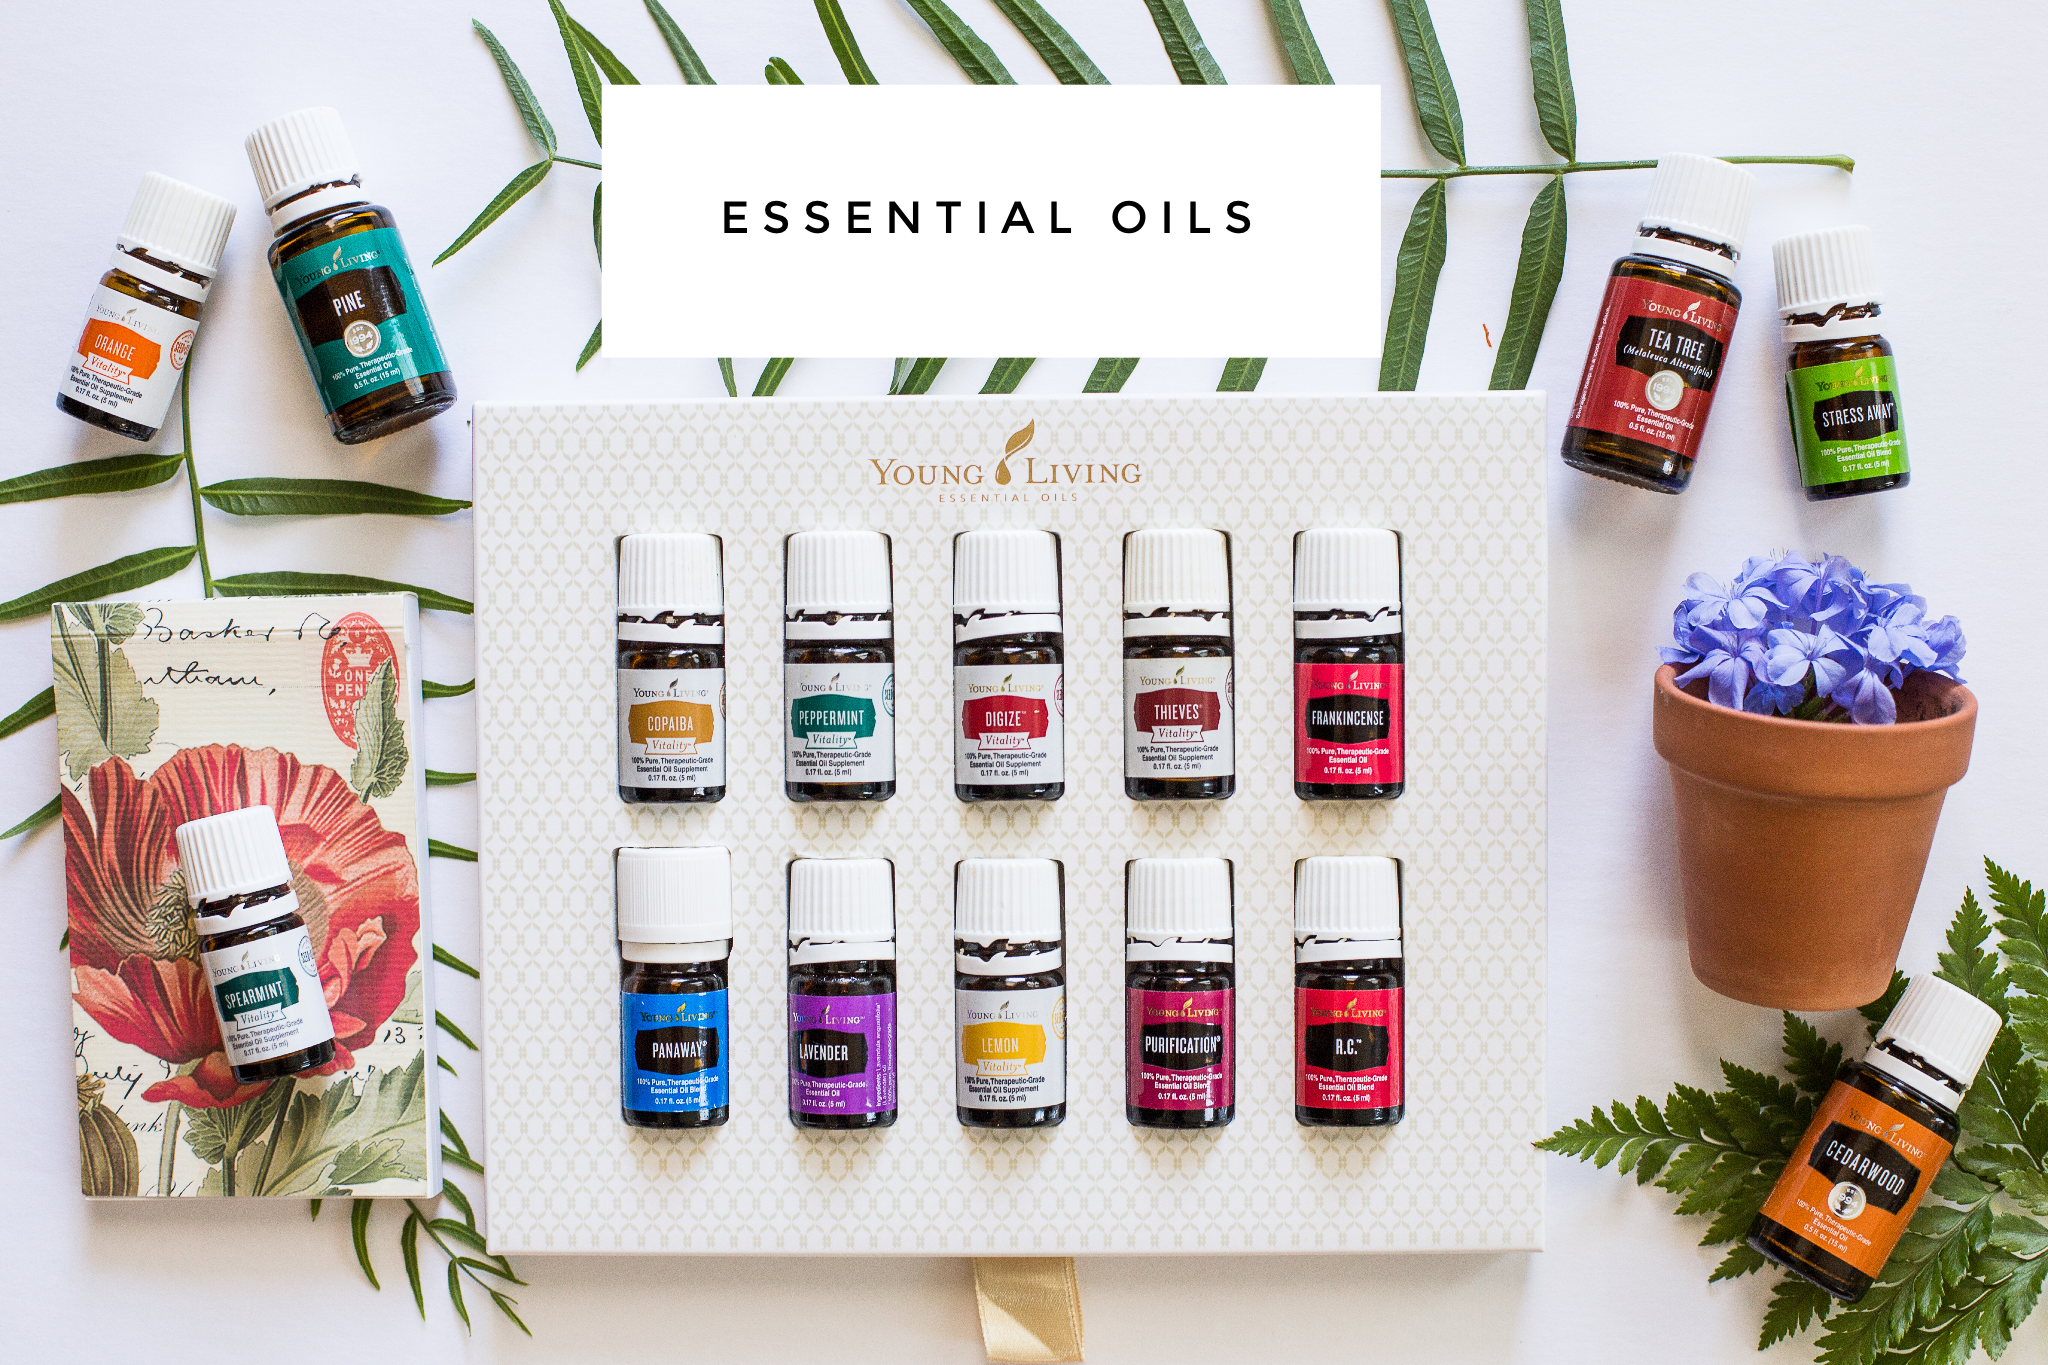 """Are you sick of me talking about oils yet? Hint: It probably won't stop ;) I am IN LOVE with this new, oily lifestyle. These are used for all kinds of support. Respiratory, immune, skin, etc. I incorporated them into my daily life and I find them so soothing to turn to. I can create a spa like atmosphere, or beauty care products with them, they are natural, safe alternatives to the chemicals that we use. By common sense you can figure out that this has to be better for you: to support your body vs damage its systems with harsh chemicals. Research the effects of our daily use products on hormones, our endocrine system, etc. Be proactive, and  feel the difference  :)I joined a team of oilers (is that what they are called?) when I bought my starter kit, and I have been blown away with the support, conversations, ideas, lifestyle sharing that they all do. My sister joined as well and she got so excited and said """"these are my people!"""" I feel the exact same way. It isn't """"normal"""" to throw away all of the chemicals in your home, or to consider food to be medicine, or to put oils on your feet every night. But I never wanted to be normal anyways."""